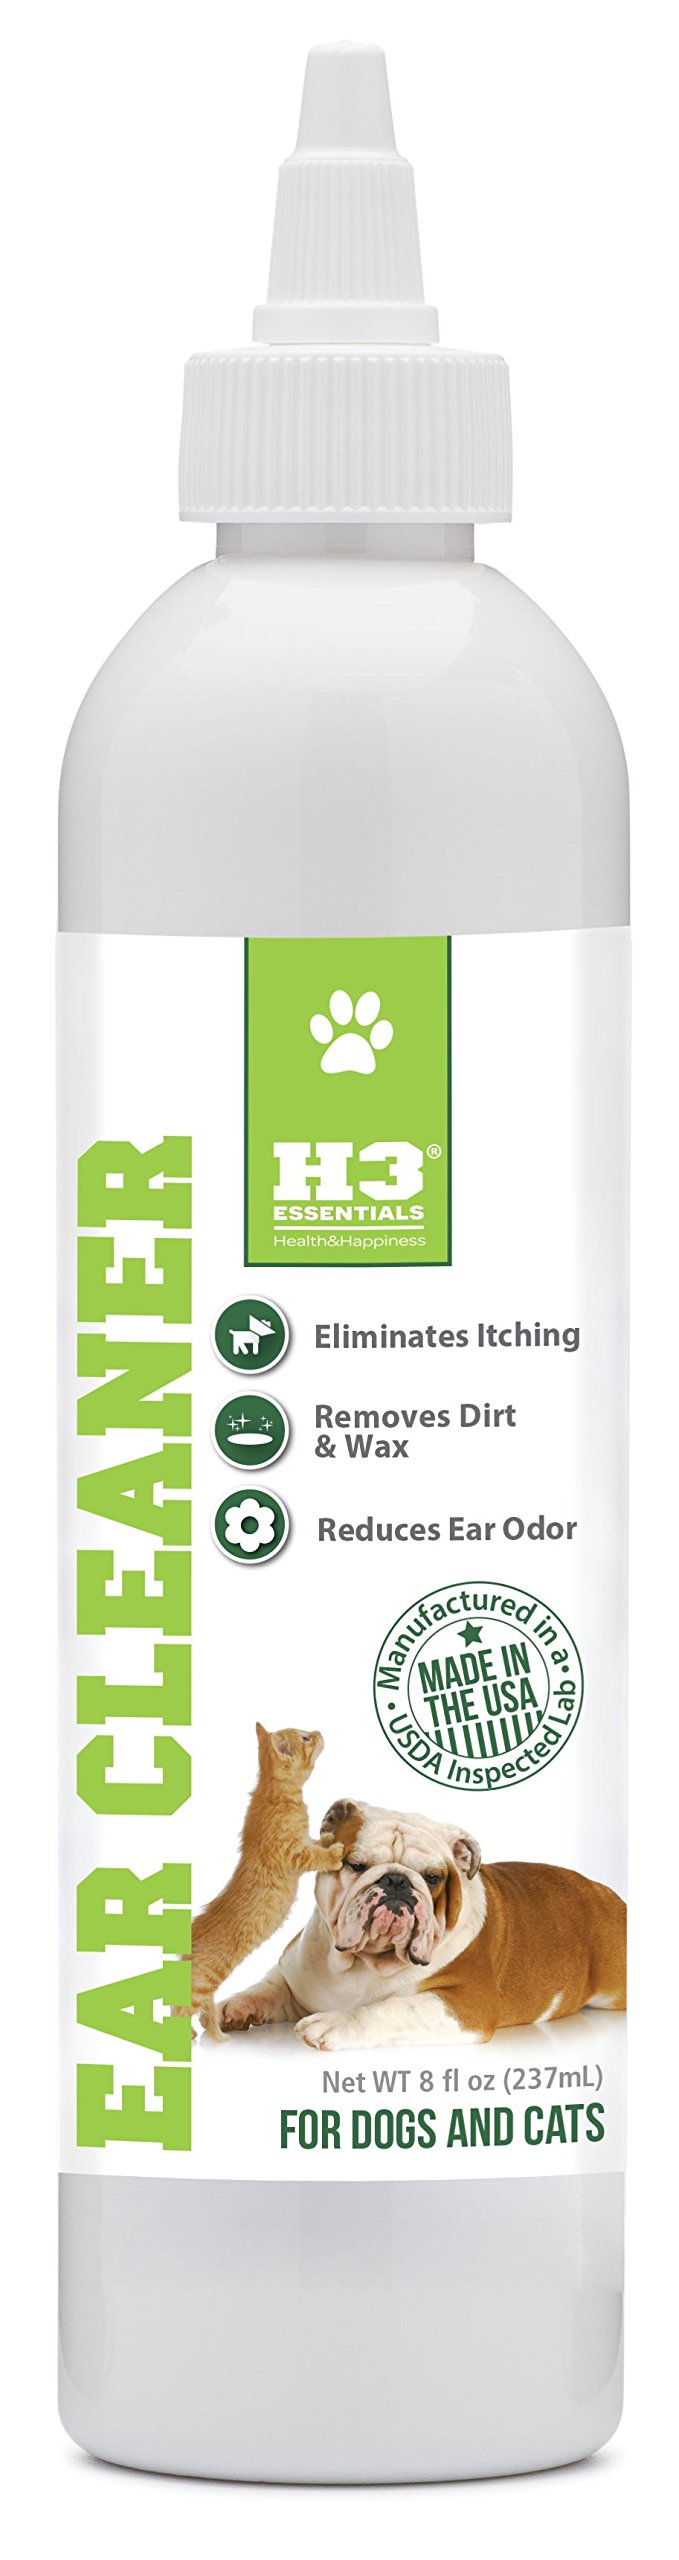 H3 Essentials Dog Ear Cleaner For Dogs and Cats with Aloe - Prevents Infection, Cleans and Dries Pets Ears - 8 oz